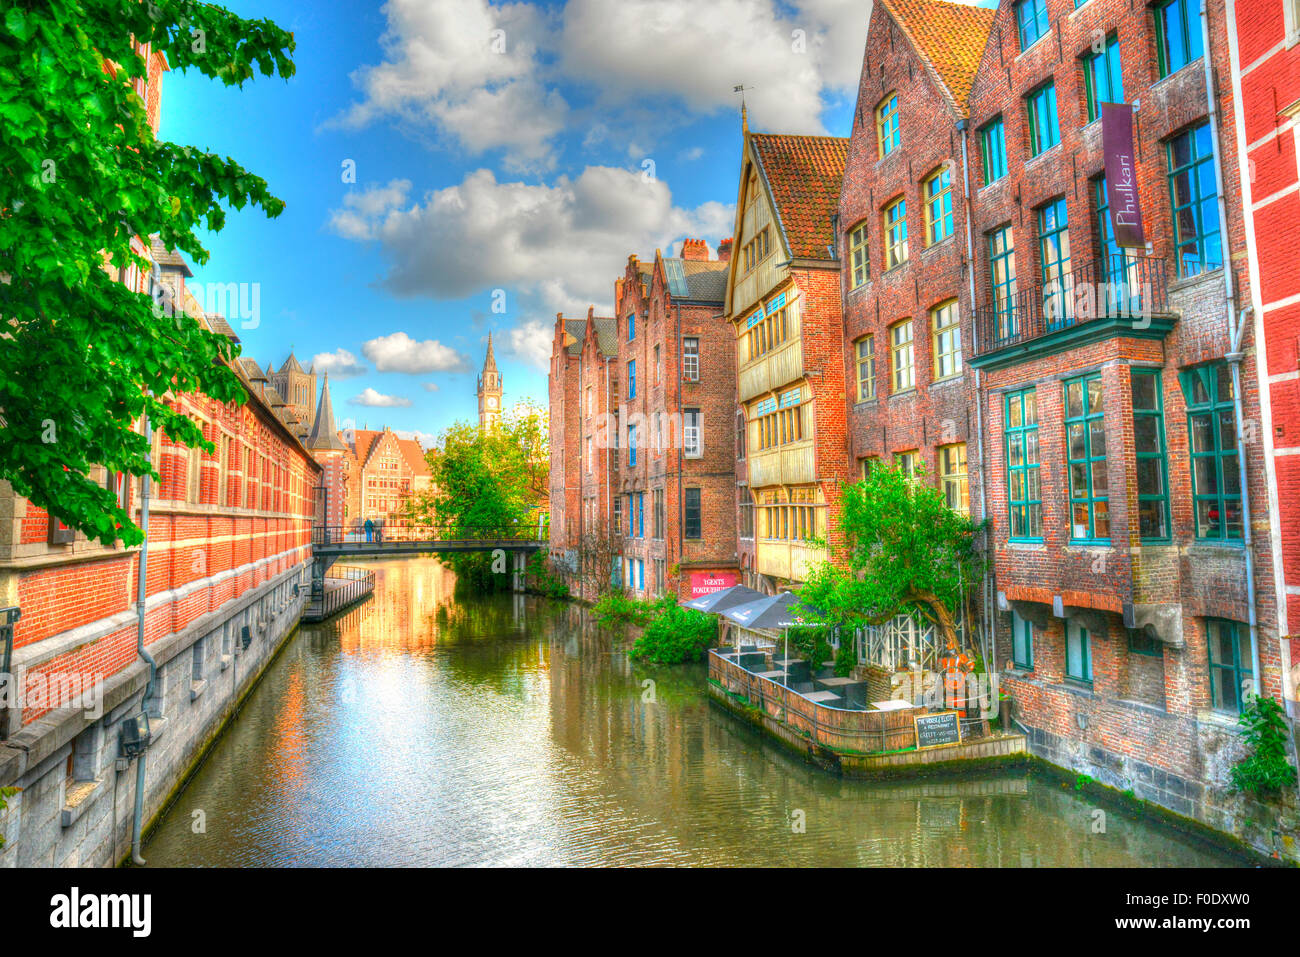 Beautiful canal at Ghent with river boats and medieval buildings photo done in HDR - Stock Image